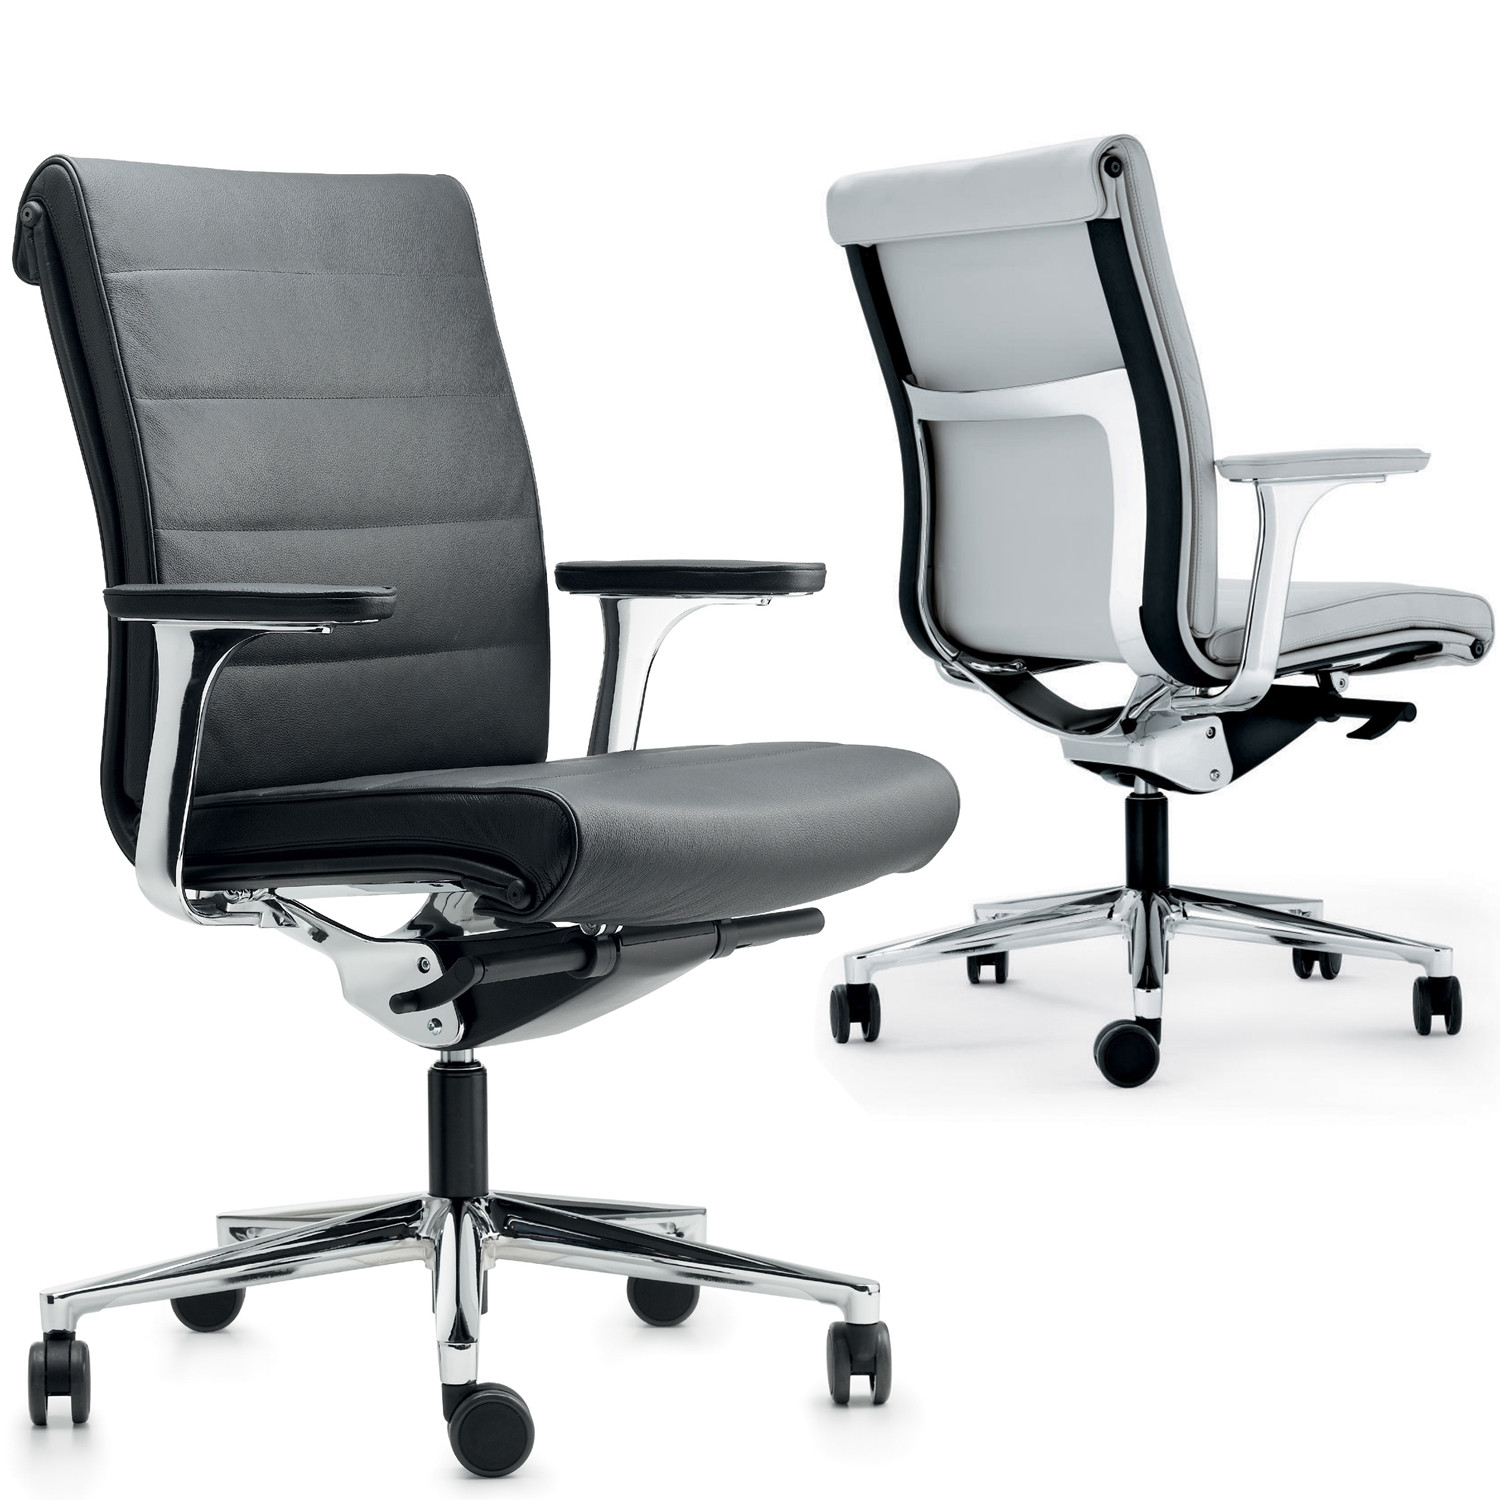 Una Plus Executive Chairs by ICF Spa